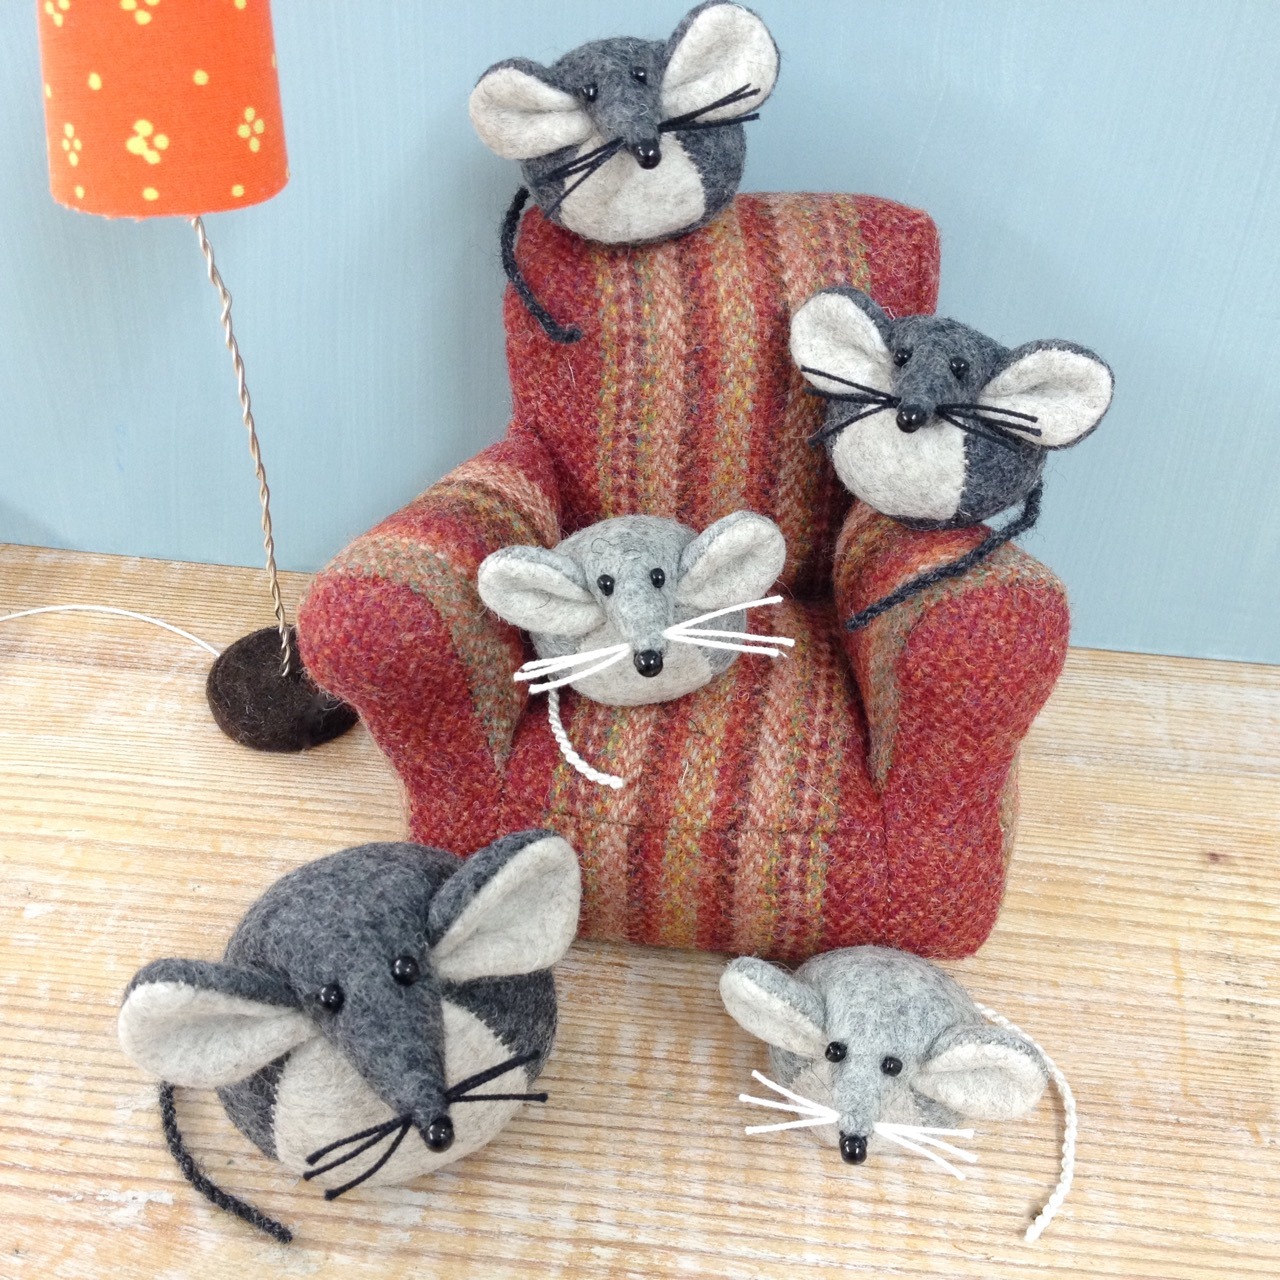 Bilberry Woods character Mika the Mouse baby sitting.